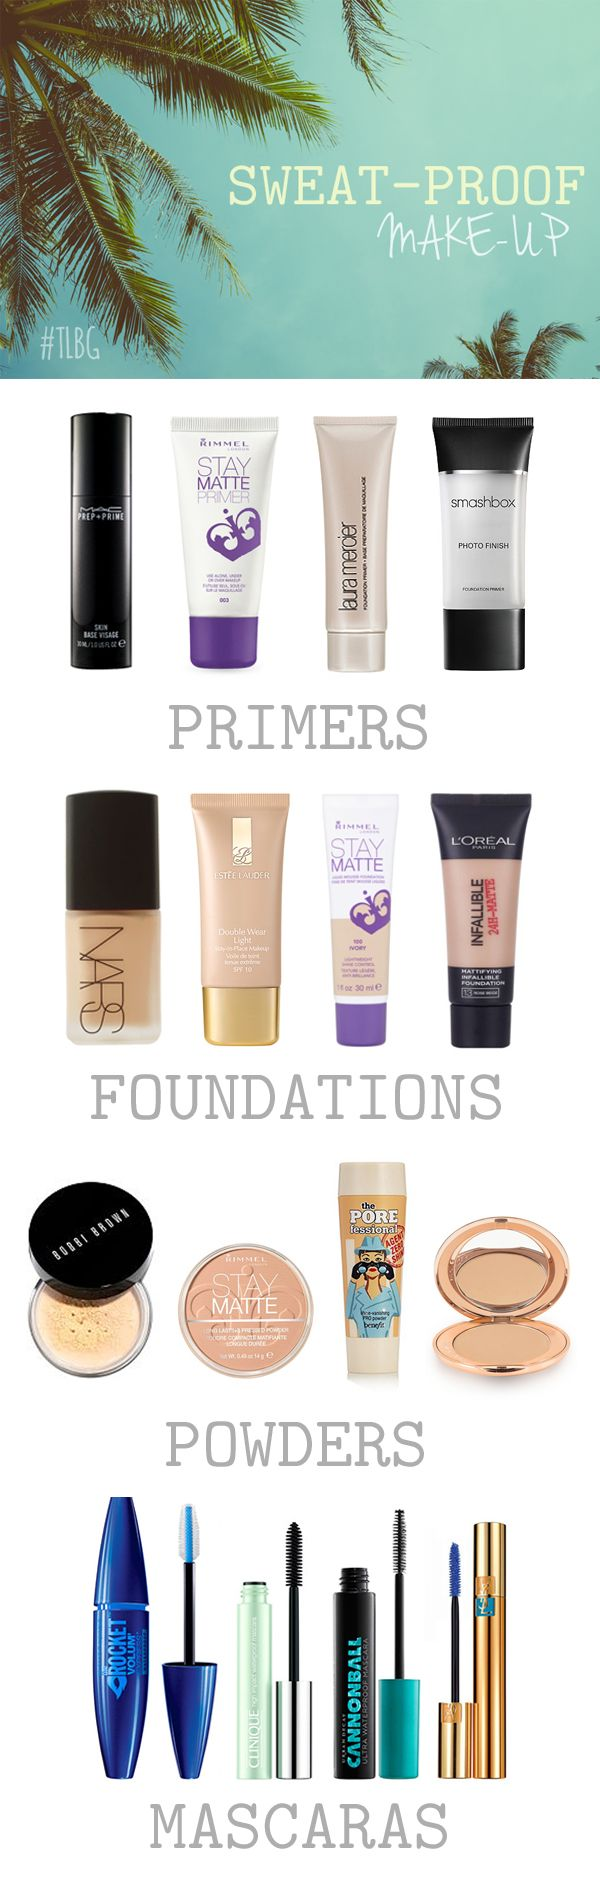 Sweat-Proof Make-Up - avoid make-up melting disaster in hot weather with our favourite face products   The Little Beauty Guide.